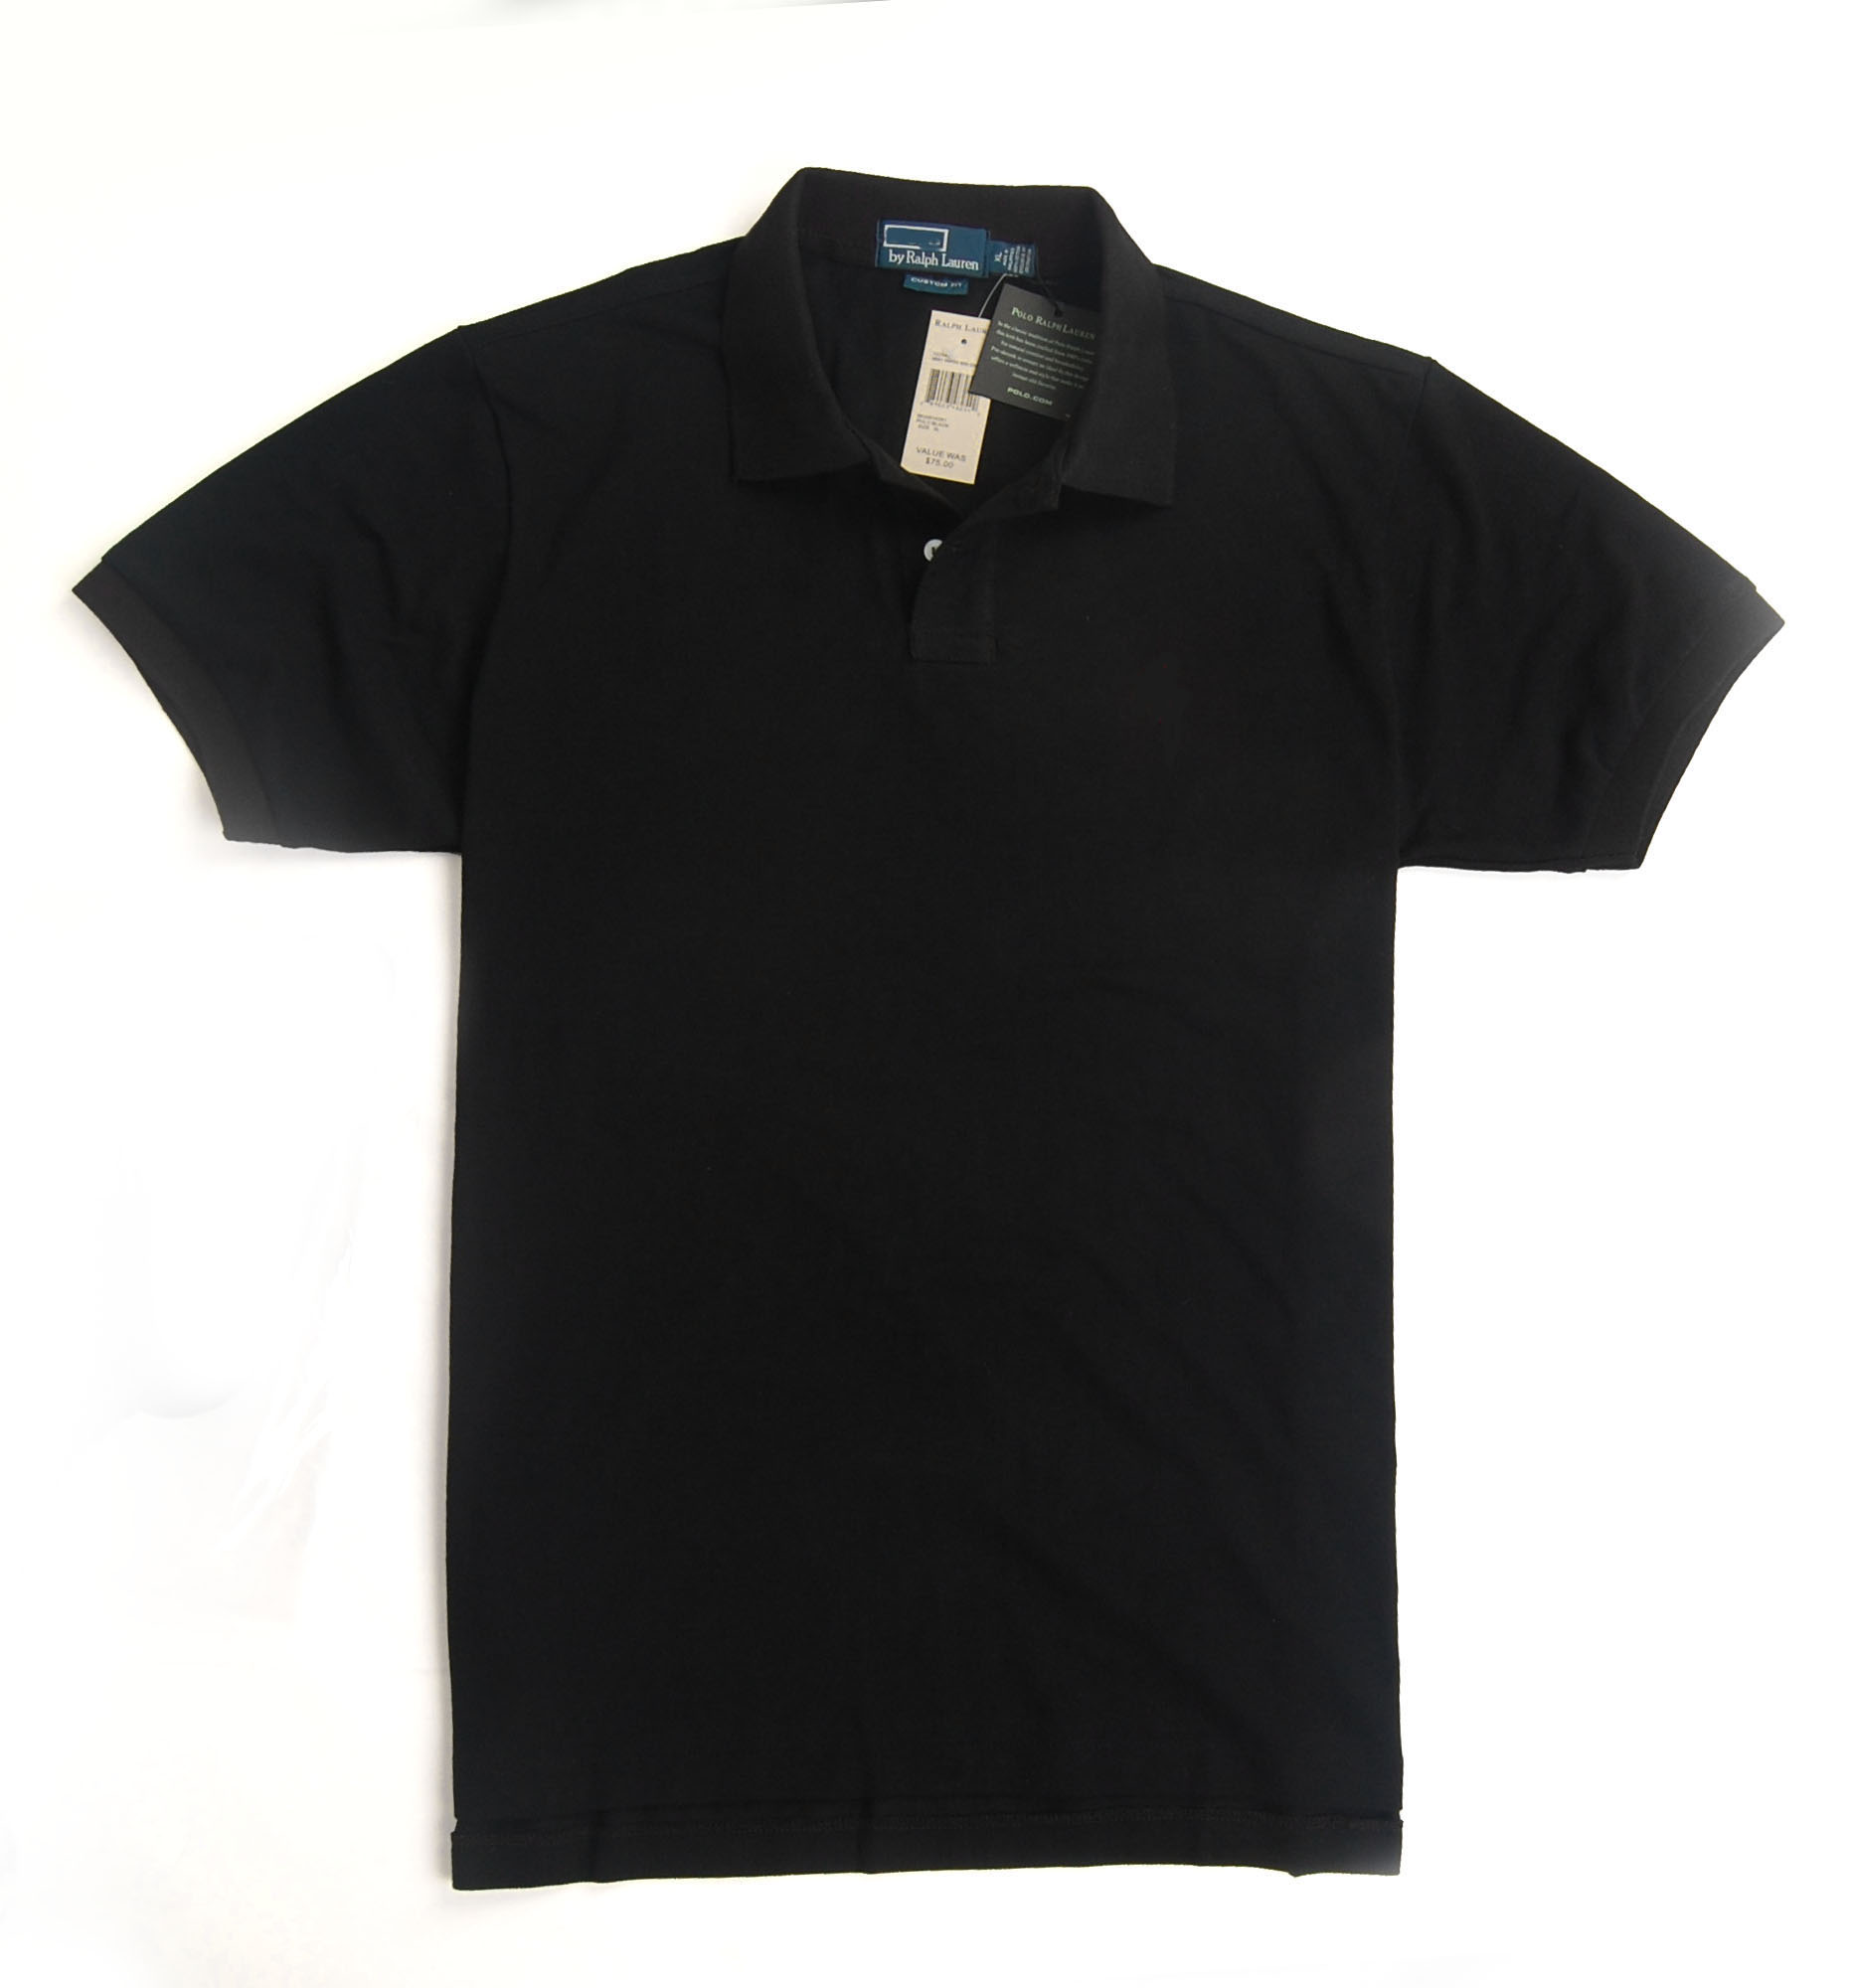 T shirts khashar trading co for Mens collared t shirts